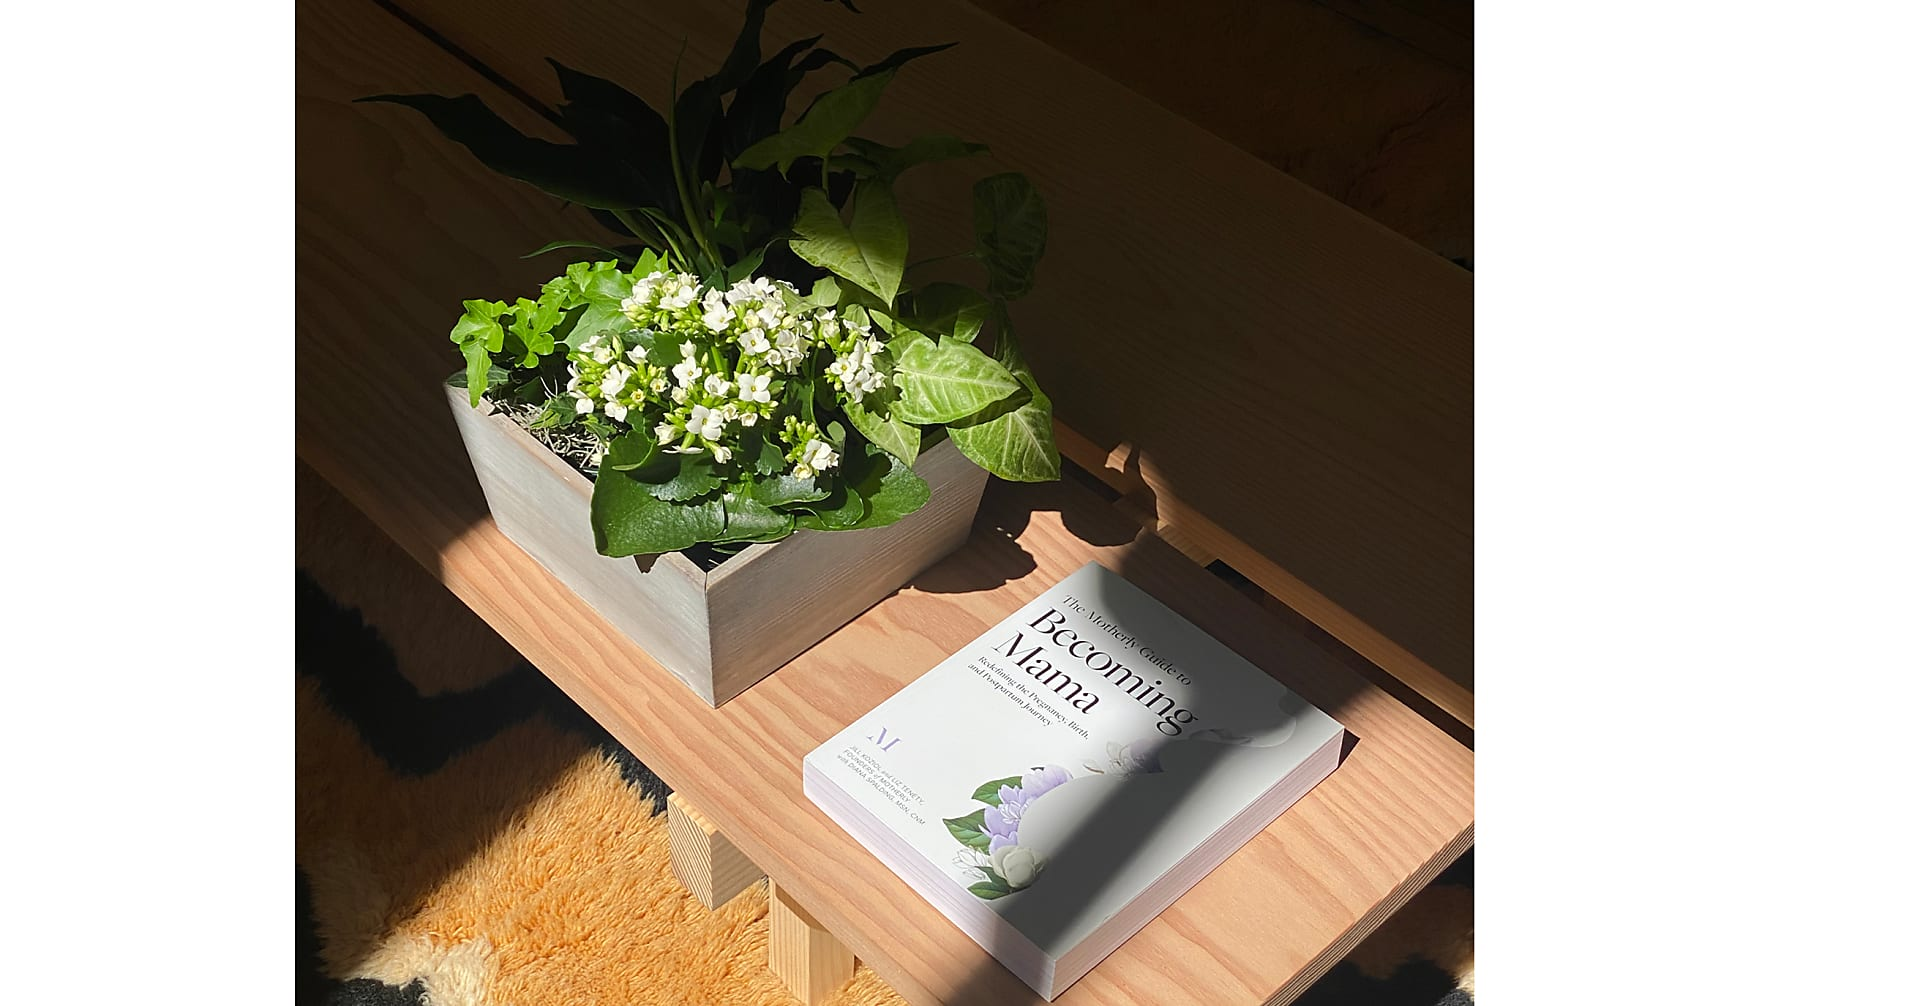 Becoming Mama Garden + Book by Motherly - Image 2 Of 2